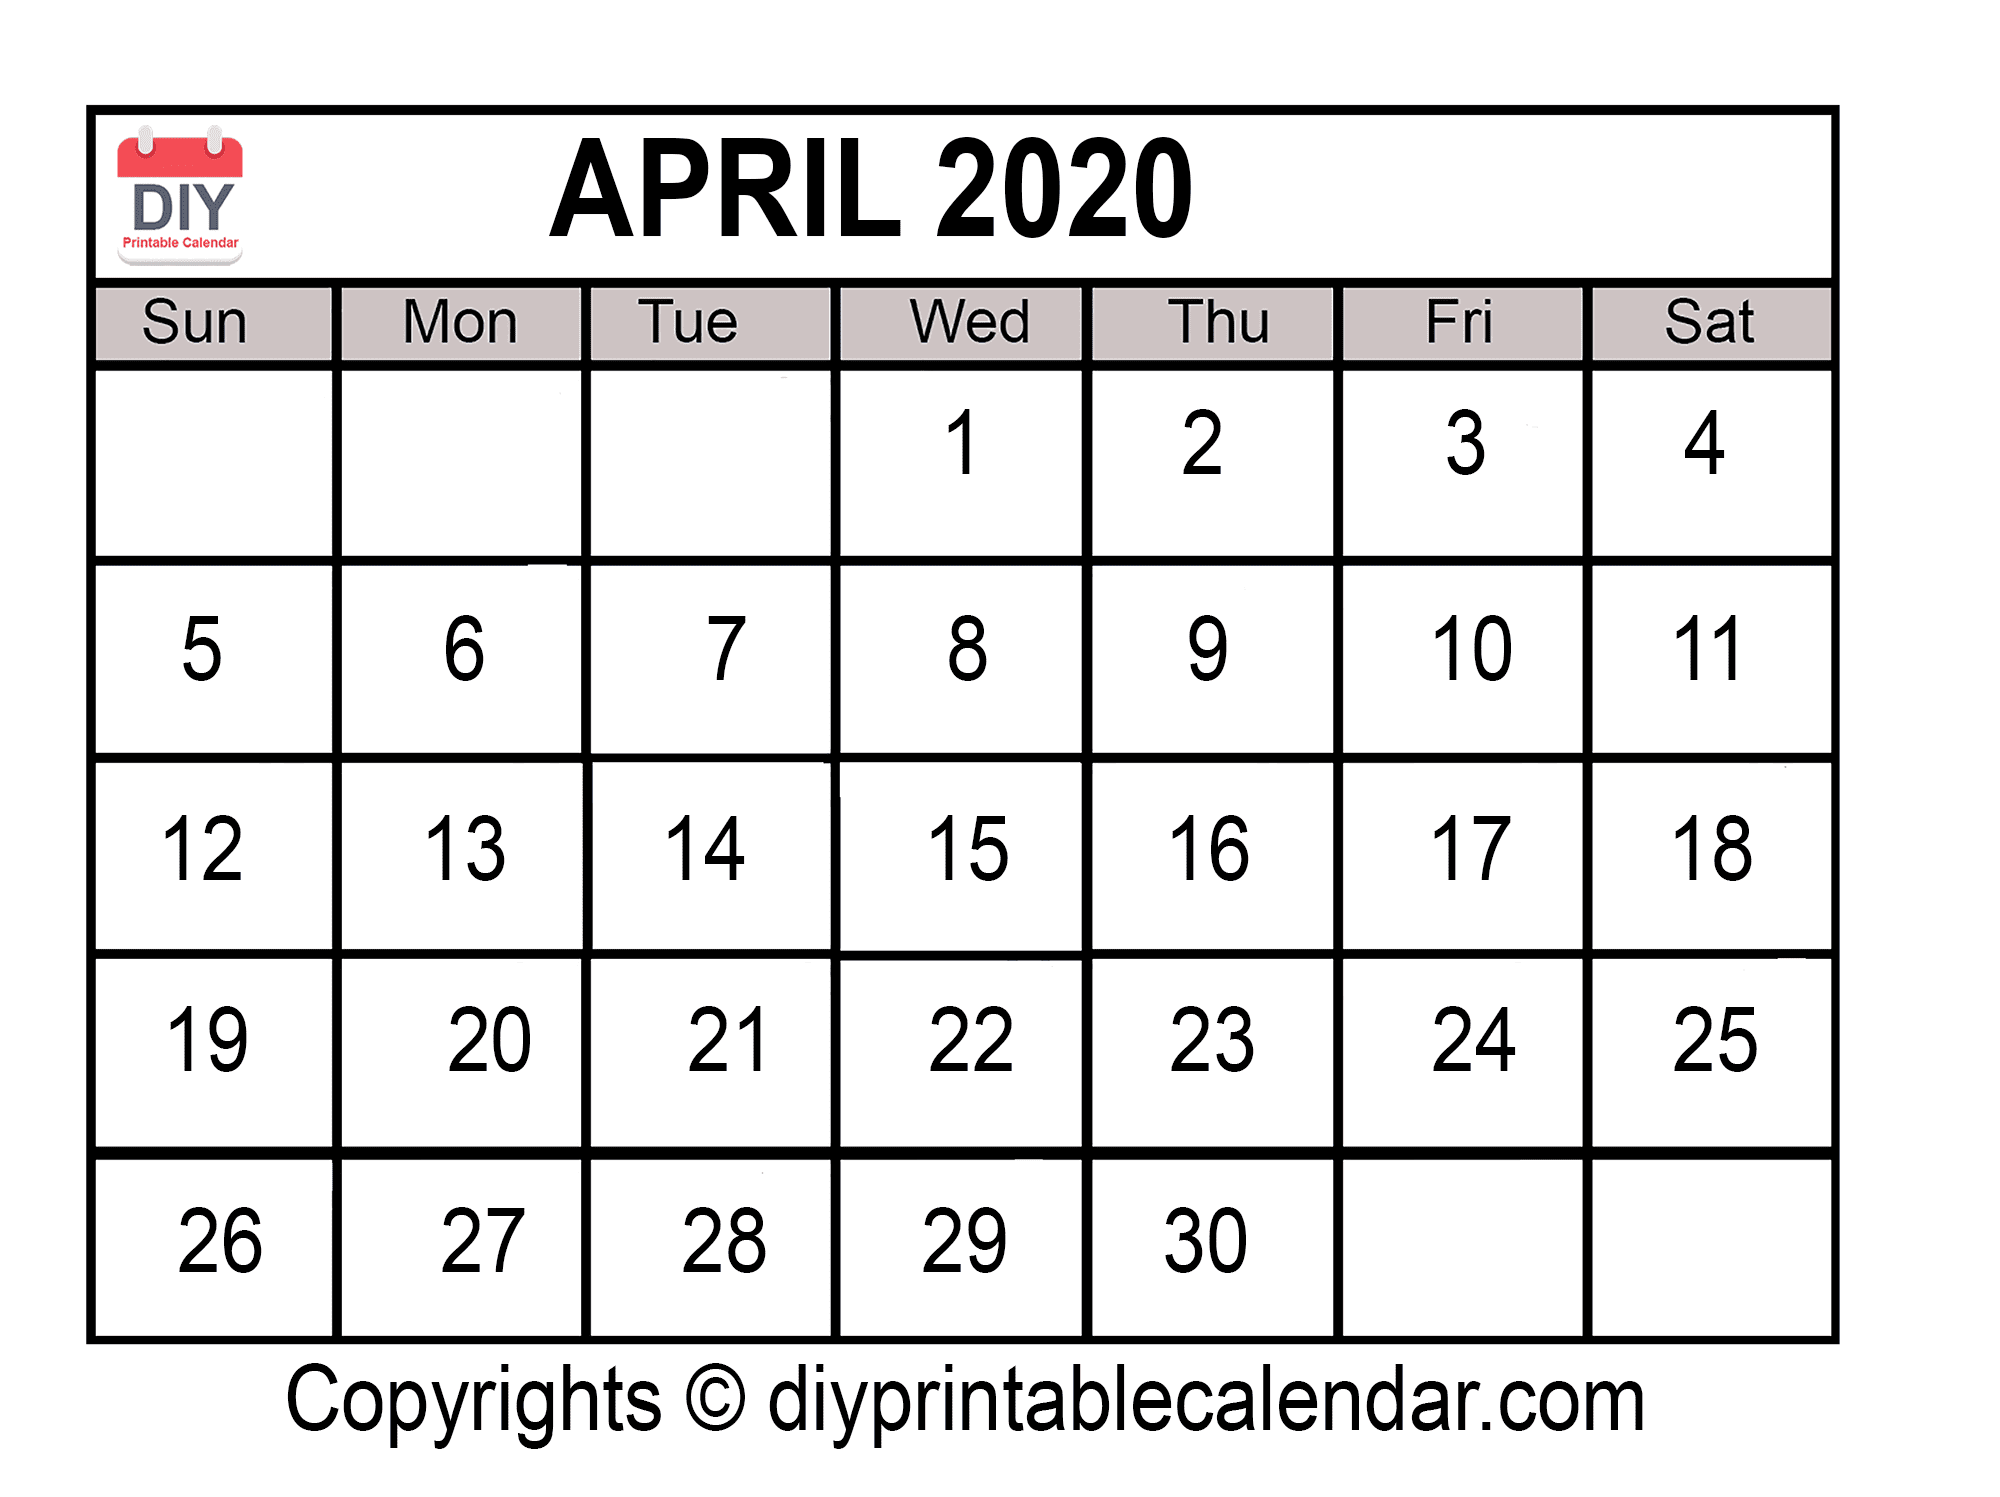 Download April 2020 Printable Calendar